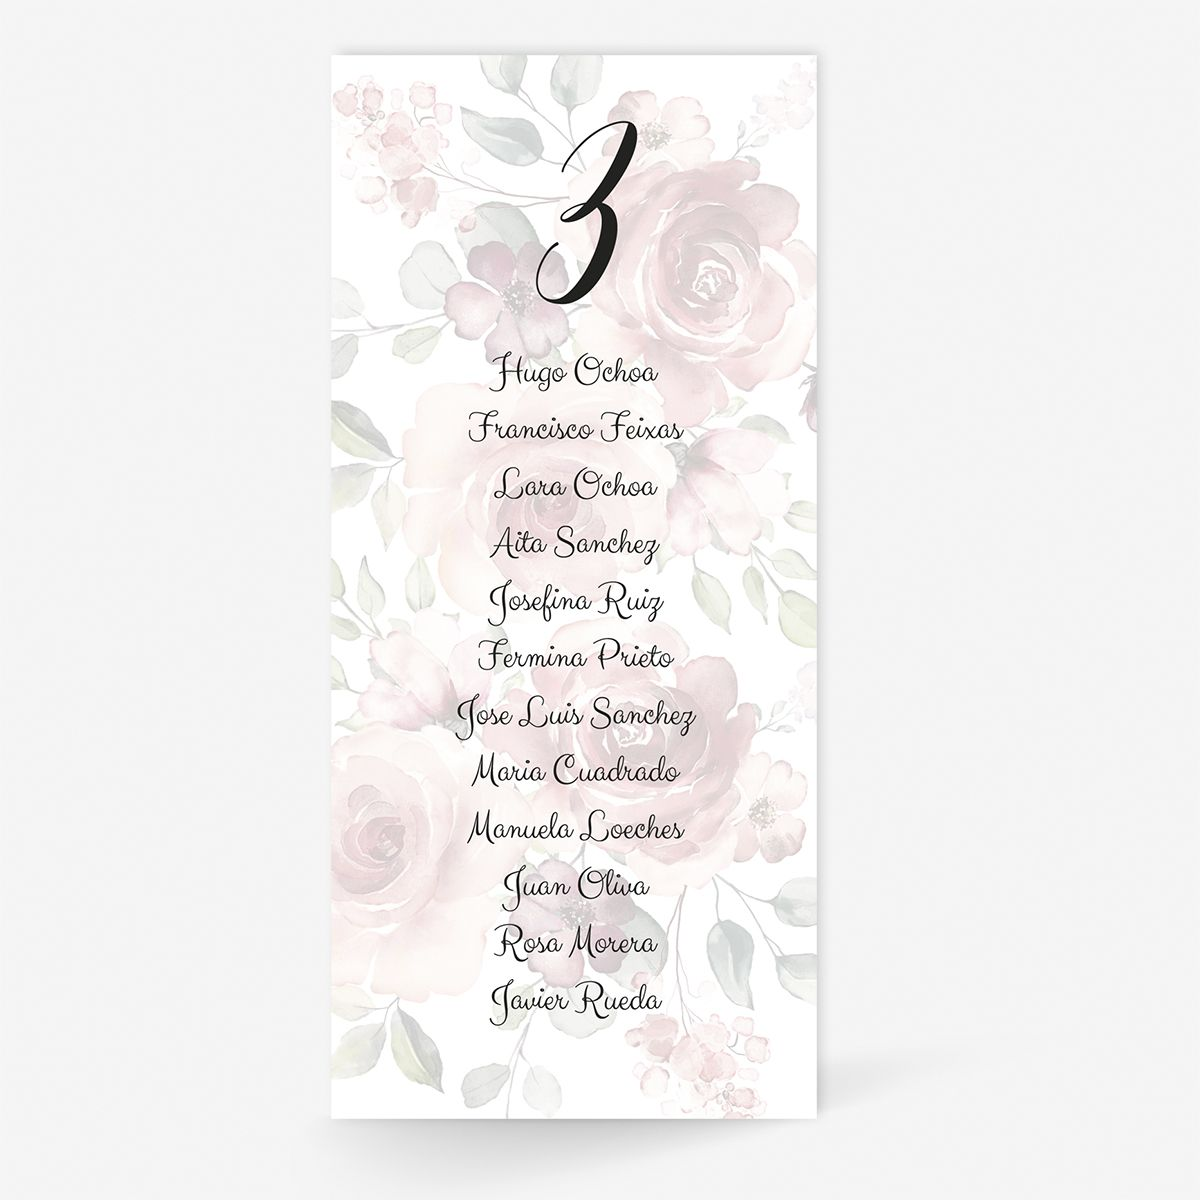 Plan de mesa (Seating plan) boda Granada